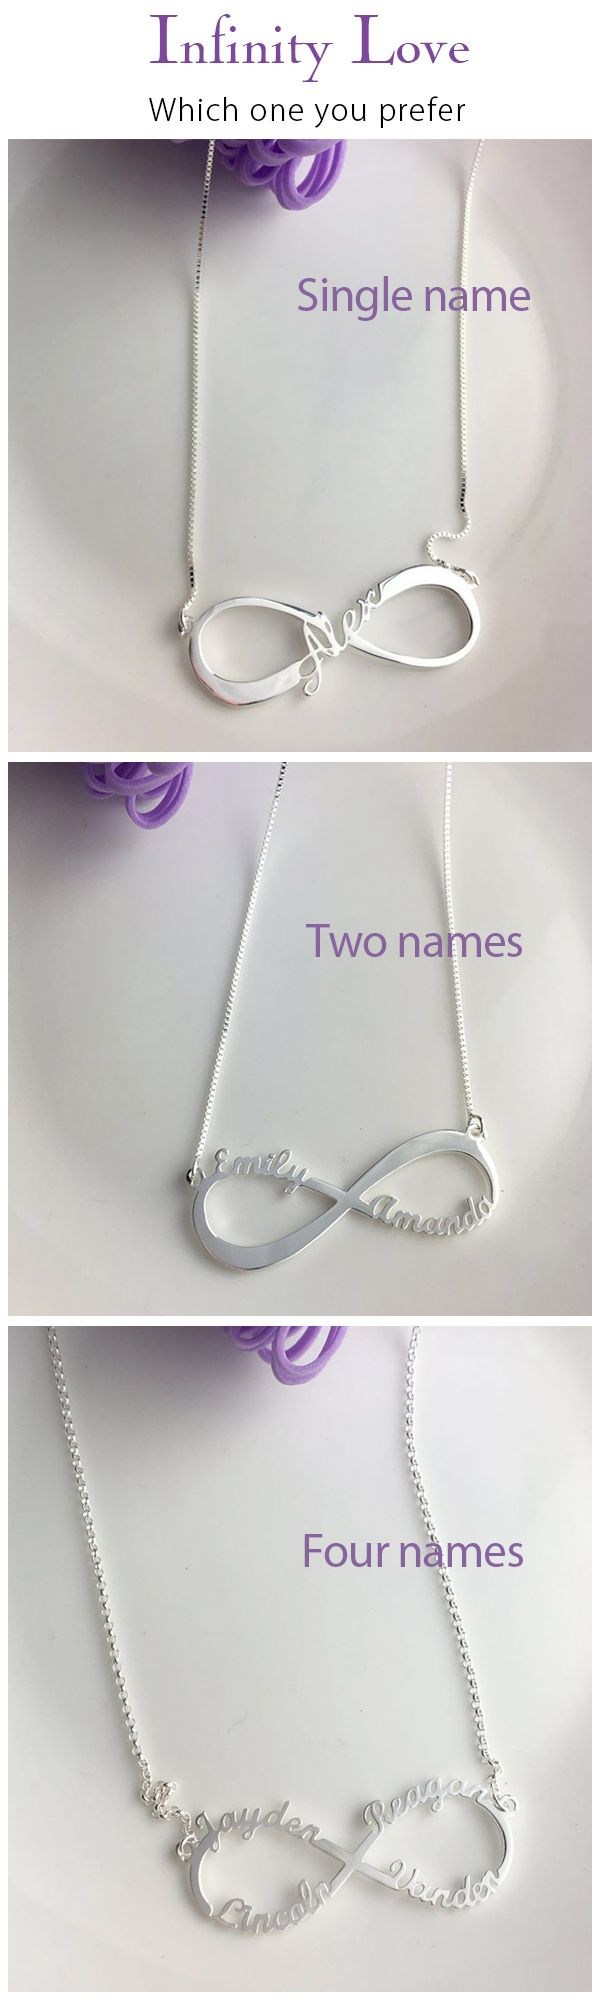 Personalized infinity symbol necklace double name forever unique personalized infinity symbol necklace double name biocorpaavc Image collections